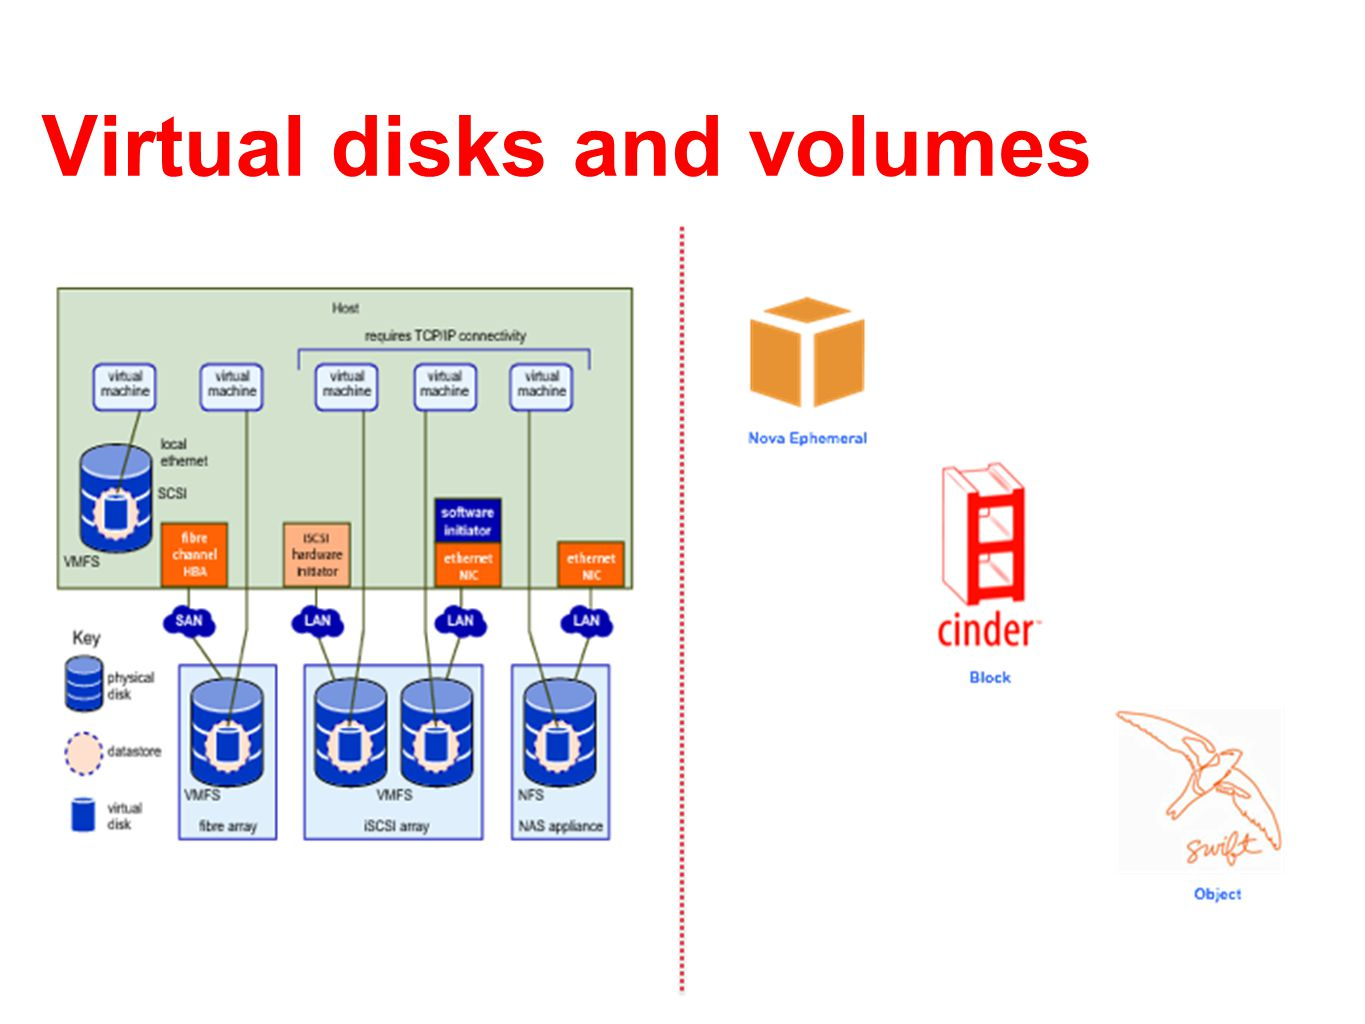 Virtual disks and volumes